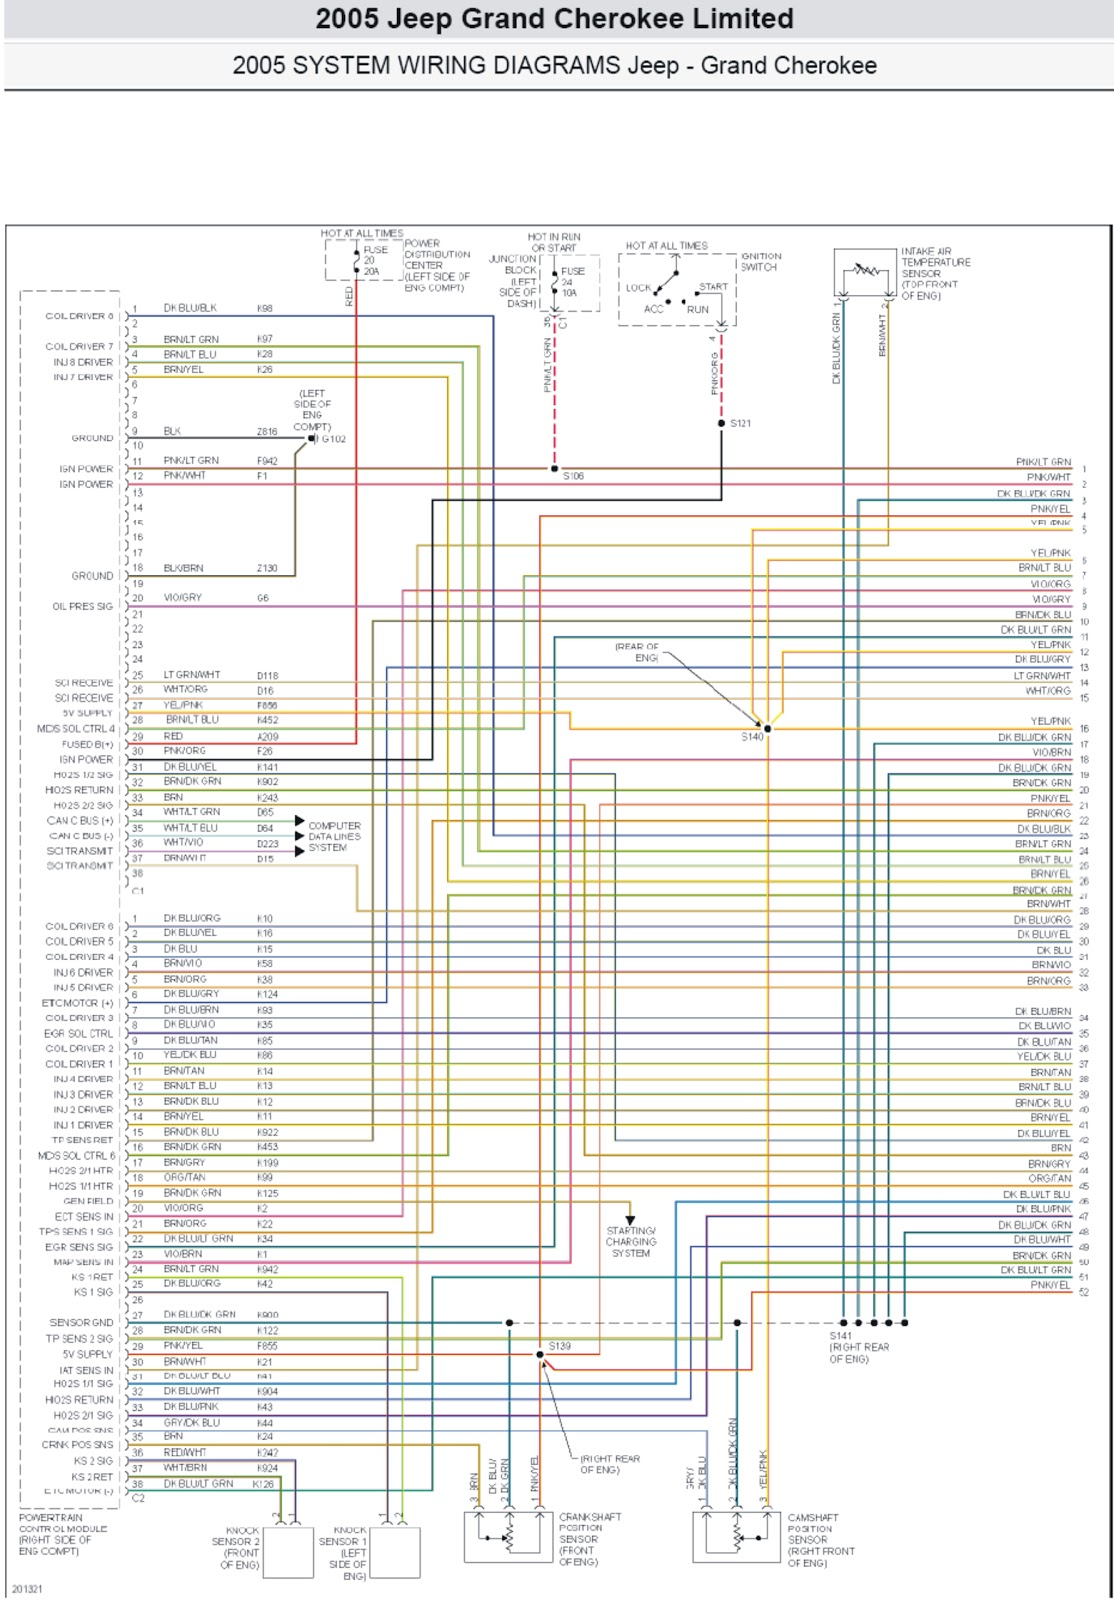 2003 jeep grand cherokee stereo wiring diagram printable images 2003 jeep grand cherokee stereo wiring diagram